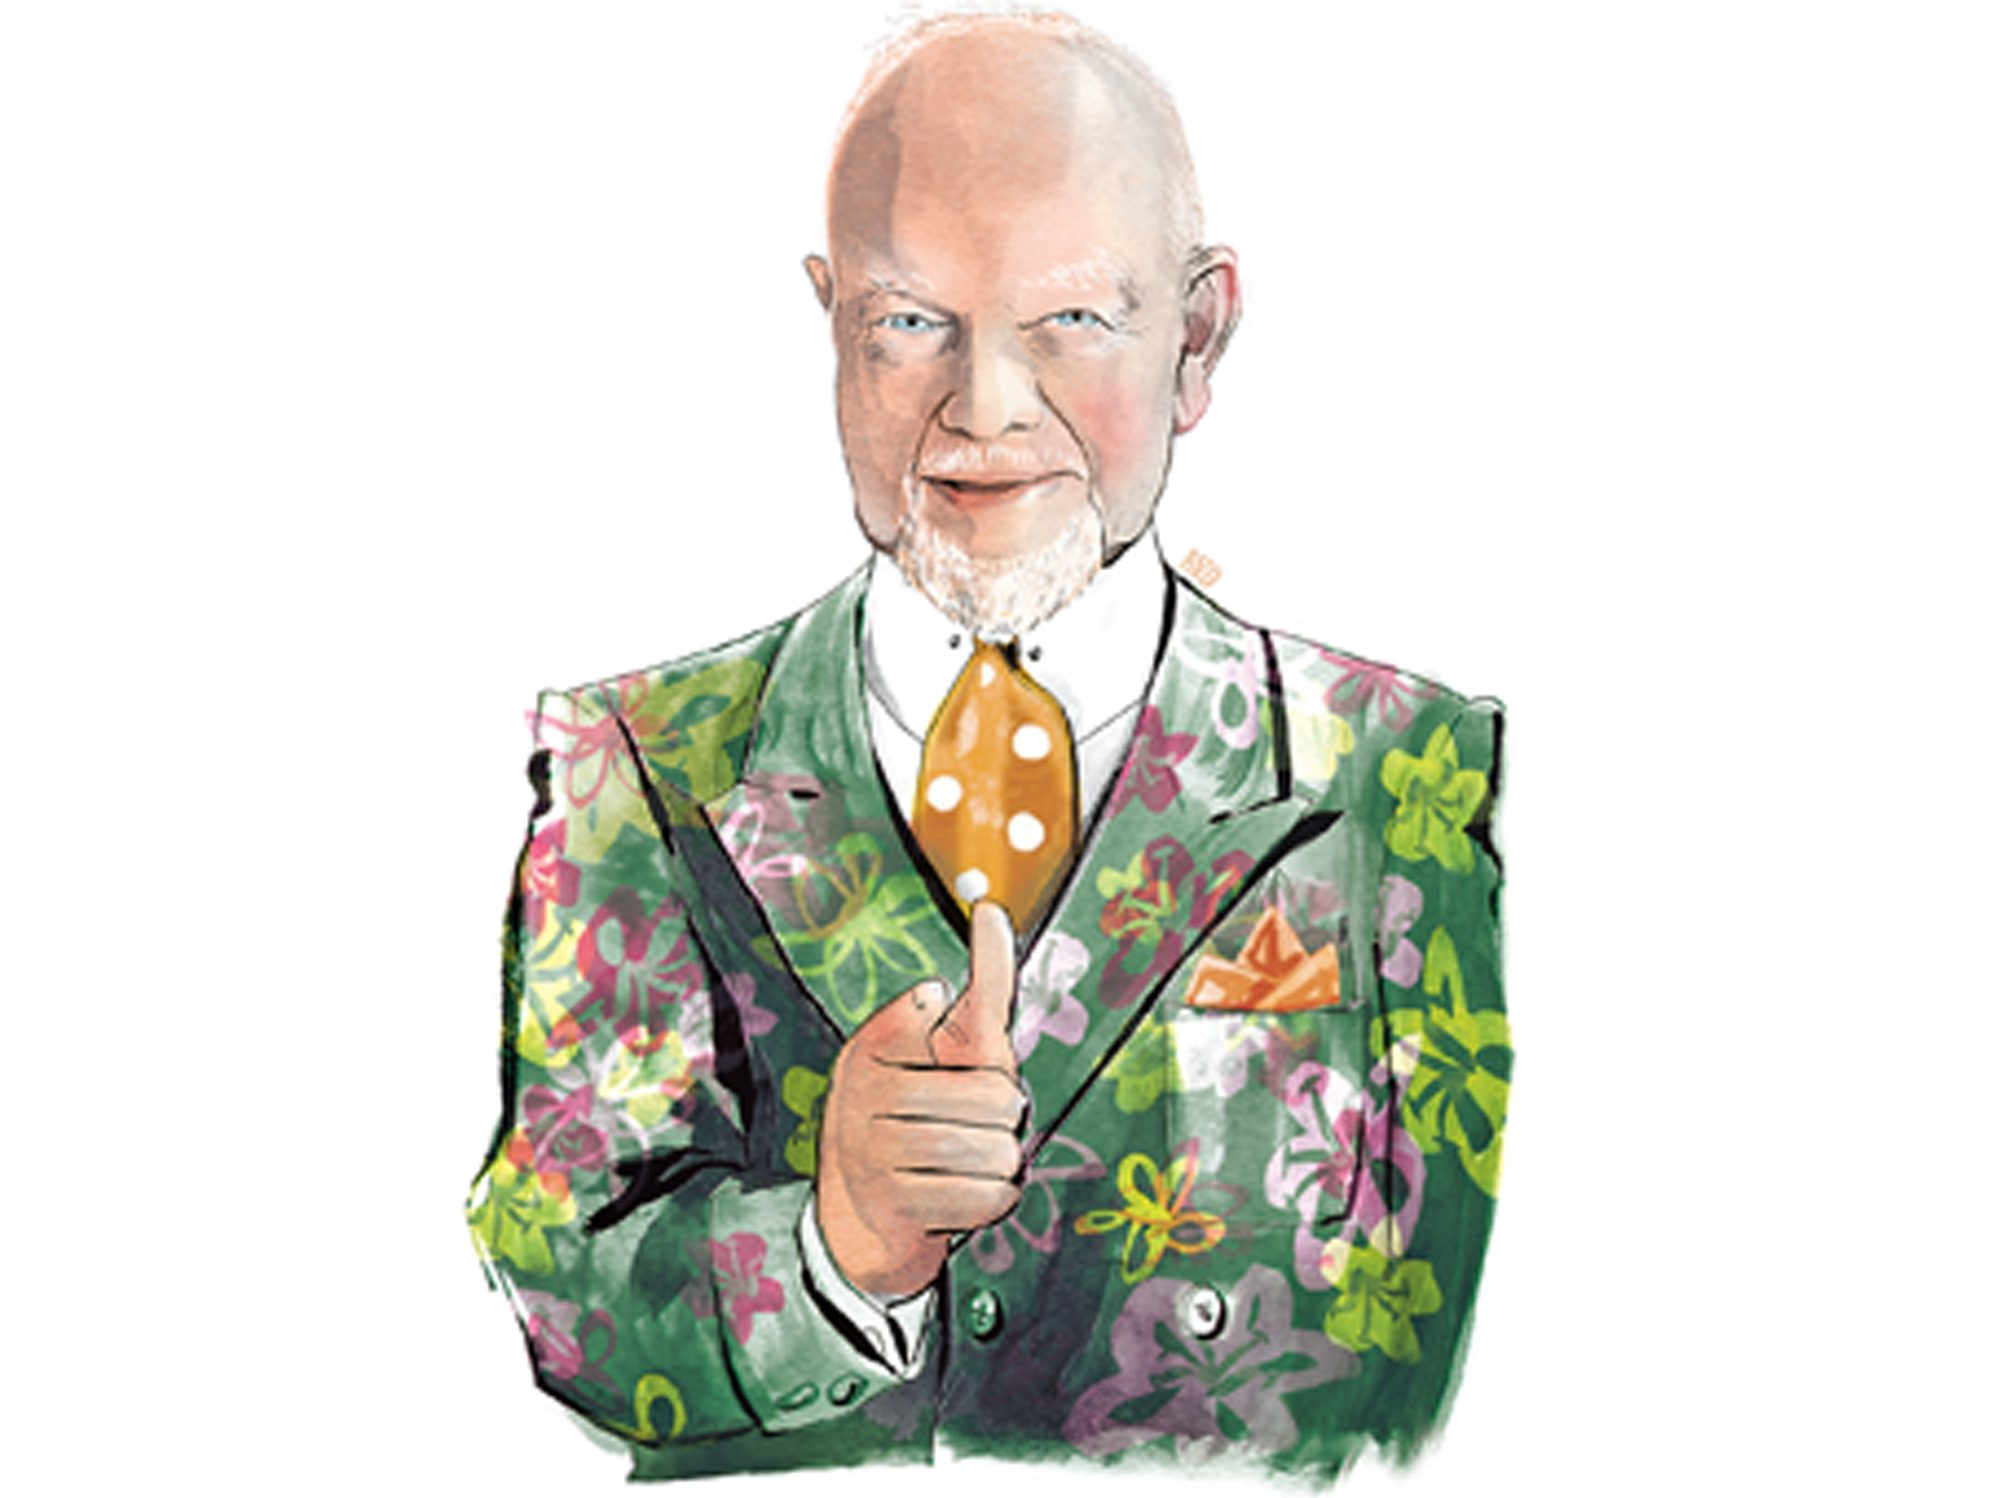 Life Coached: An Interview With Don Cherry